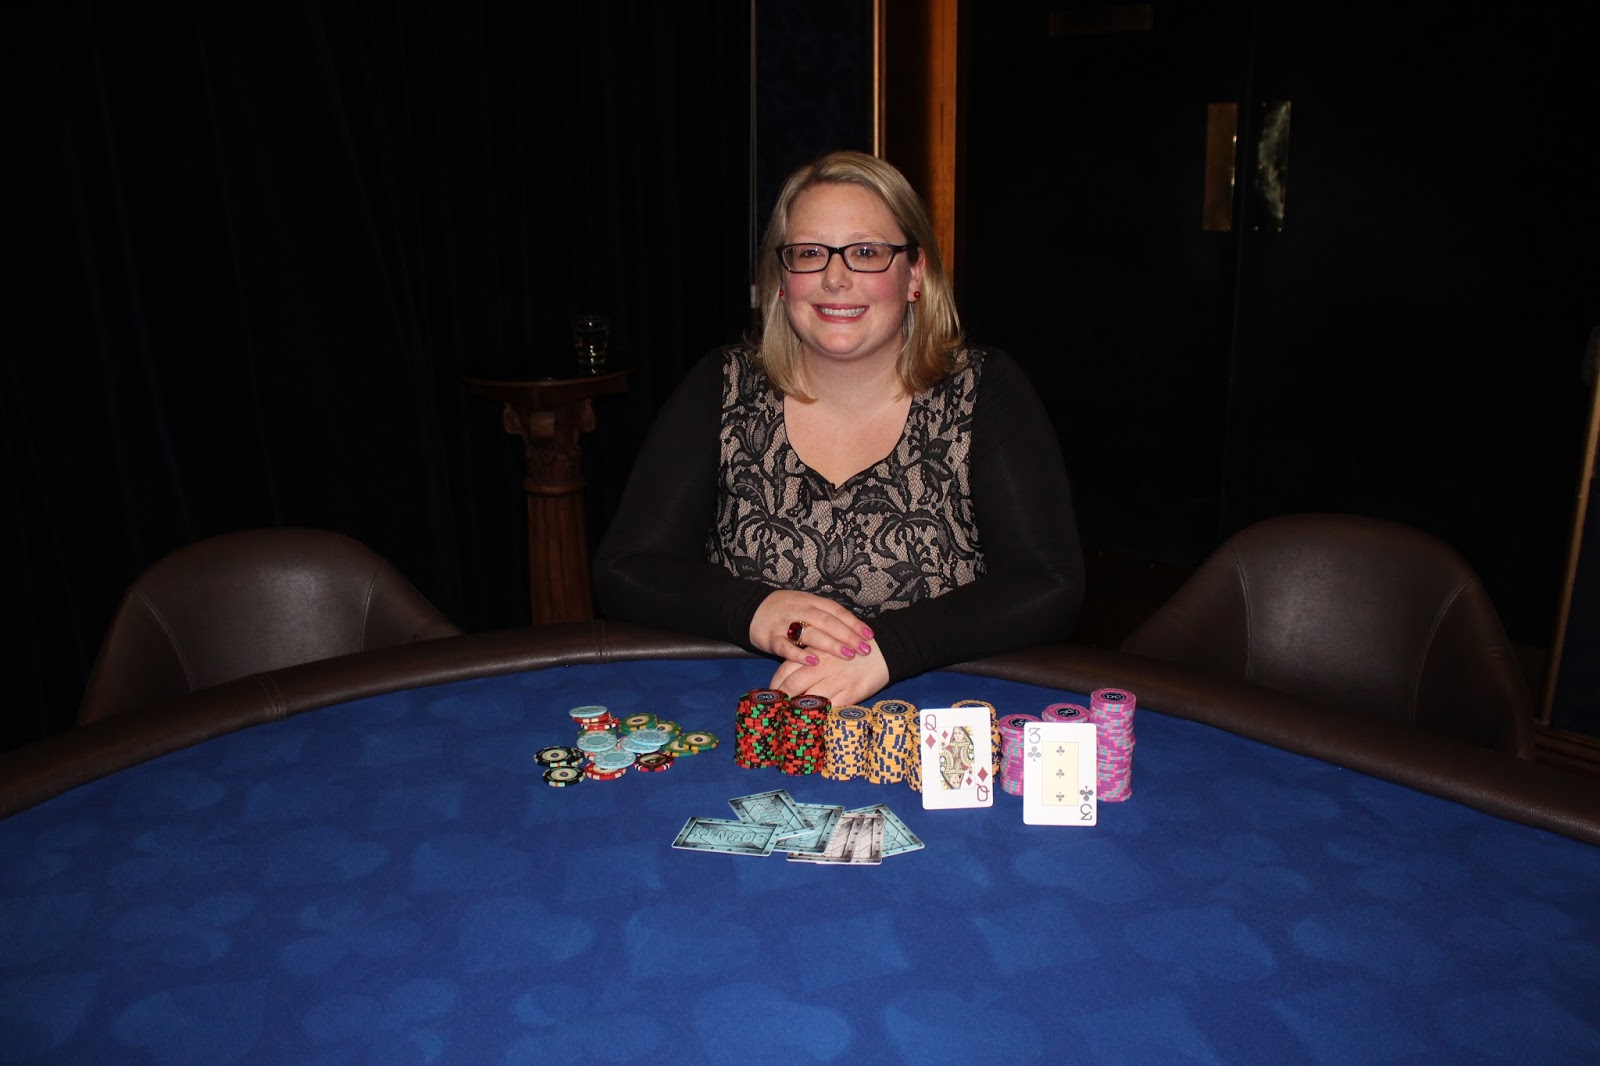 dunedin casino winter deepstack bounty tournament winner